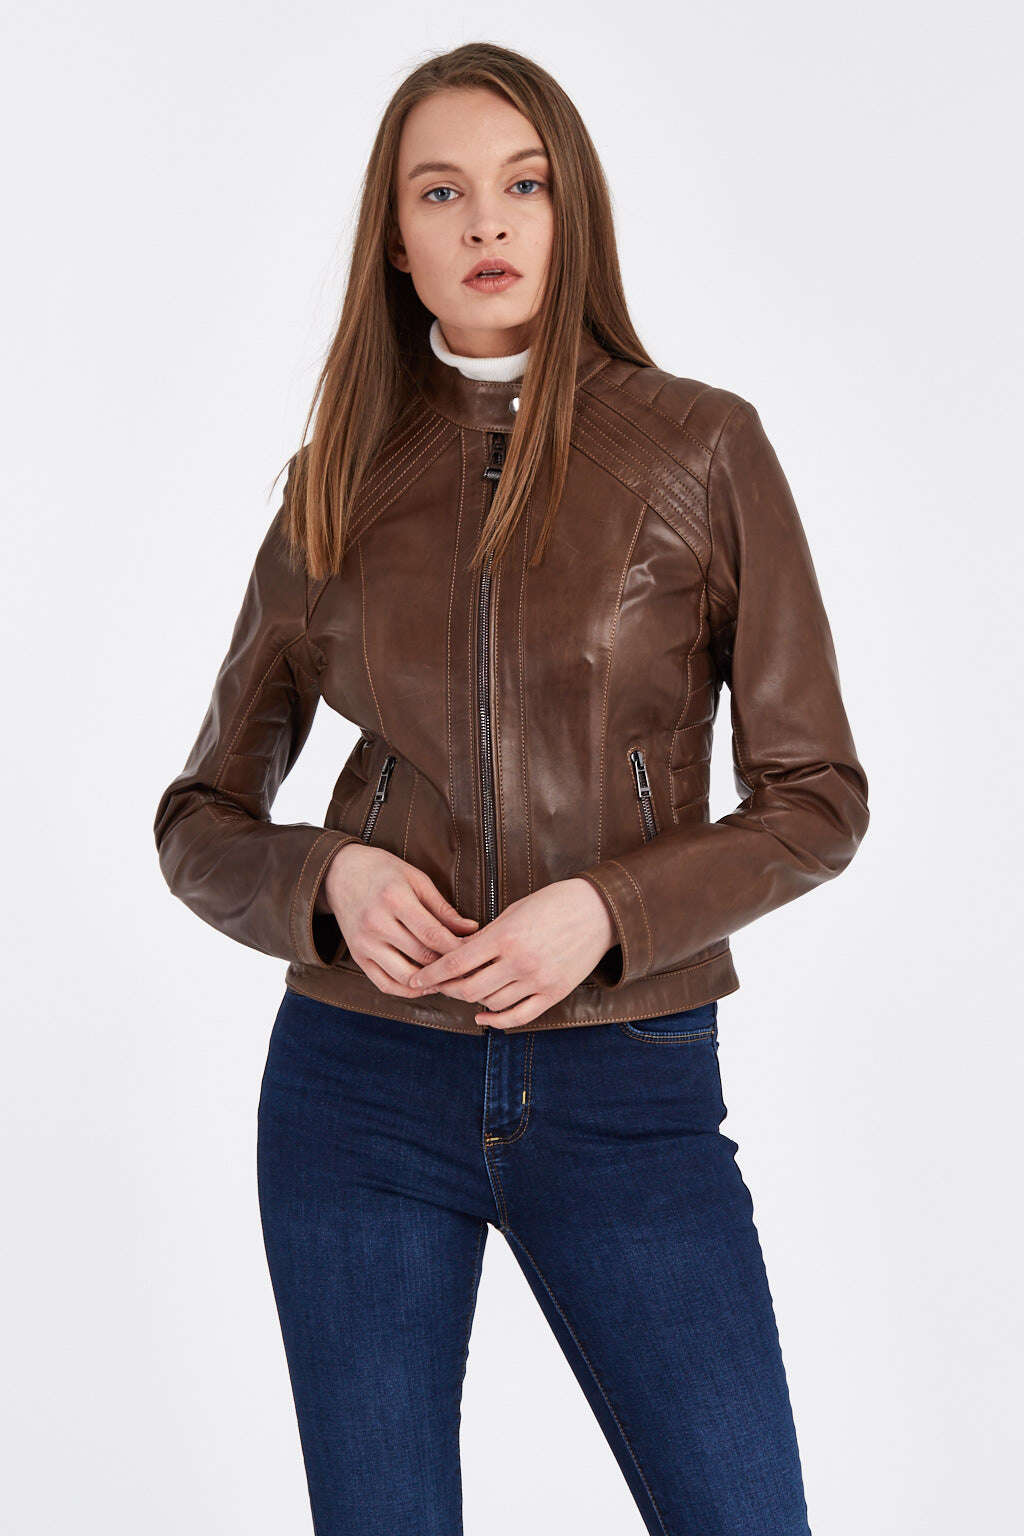 Woman Wearing Zipped Up Hickory Brown Ribbed Racer Leather Jacket